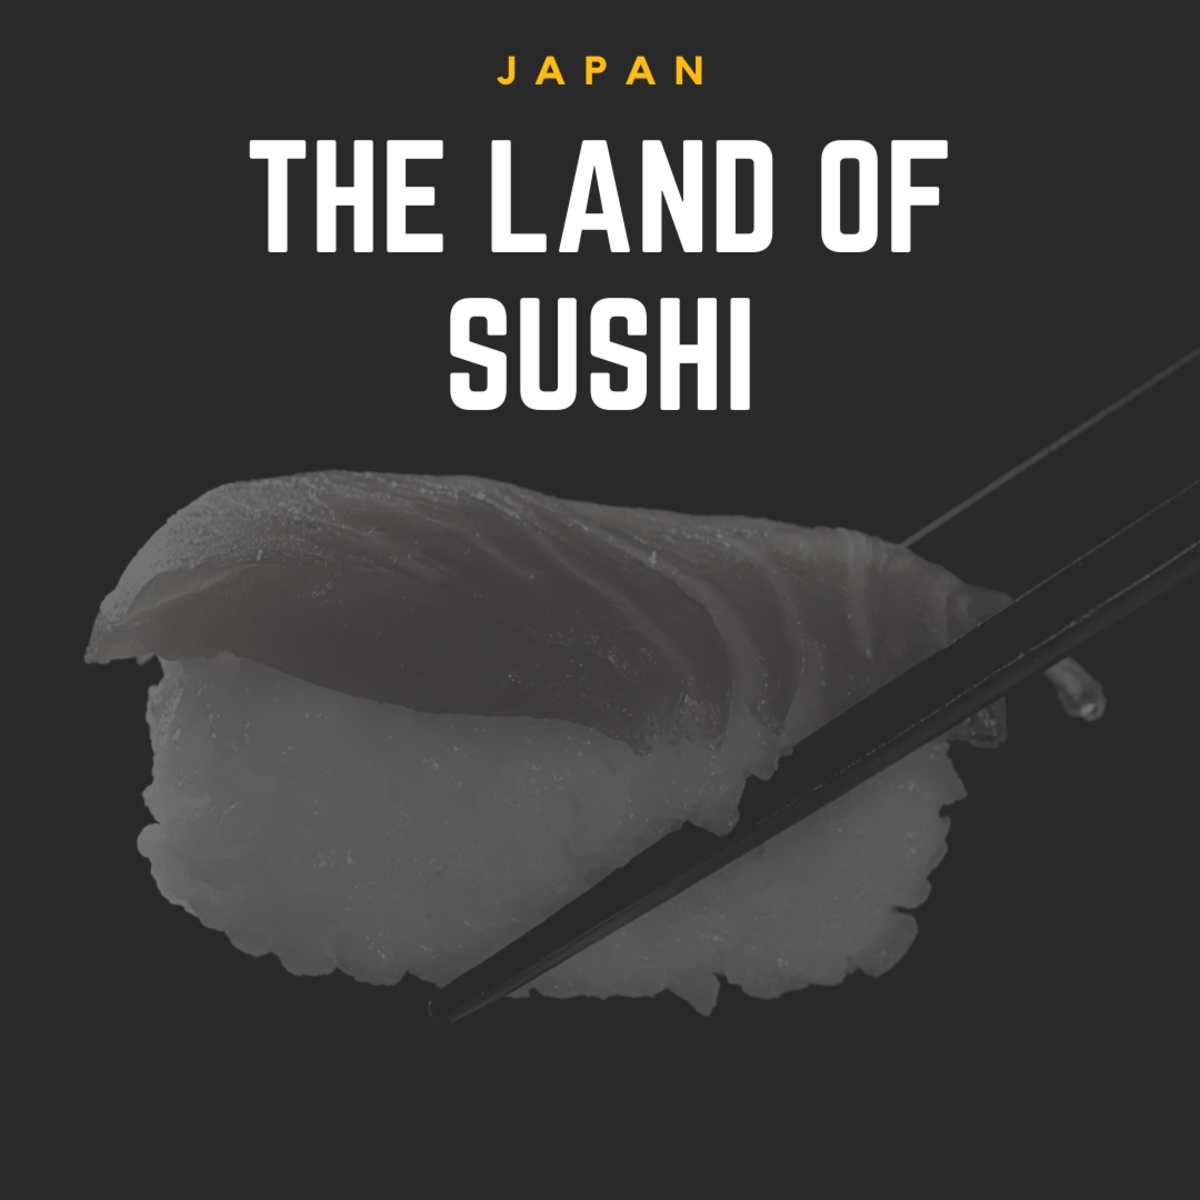 Japan: The Land of Sushi